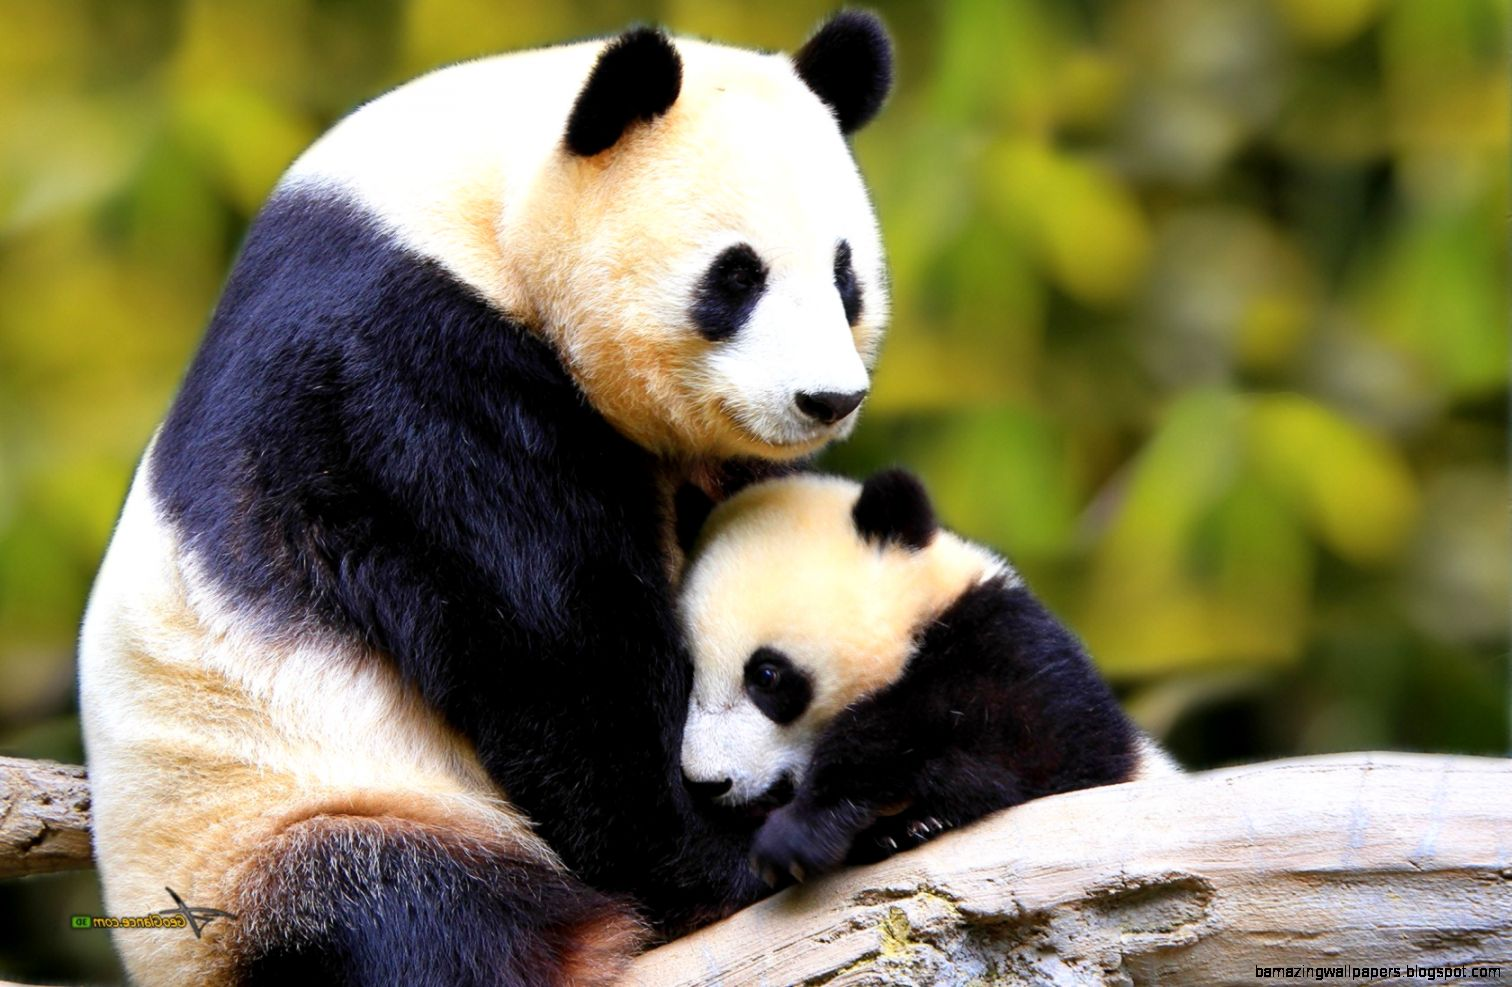 images of cute baby pandas - photo #9